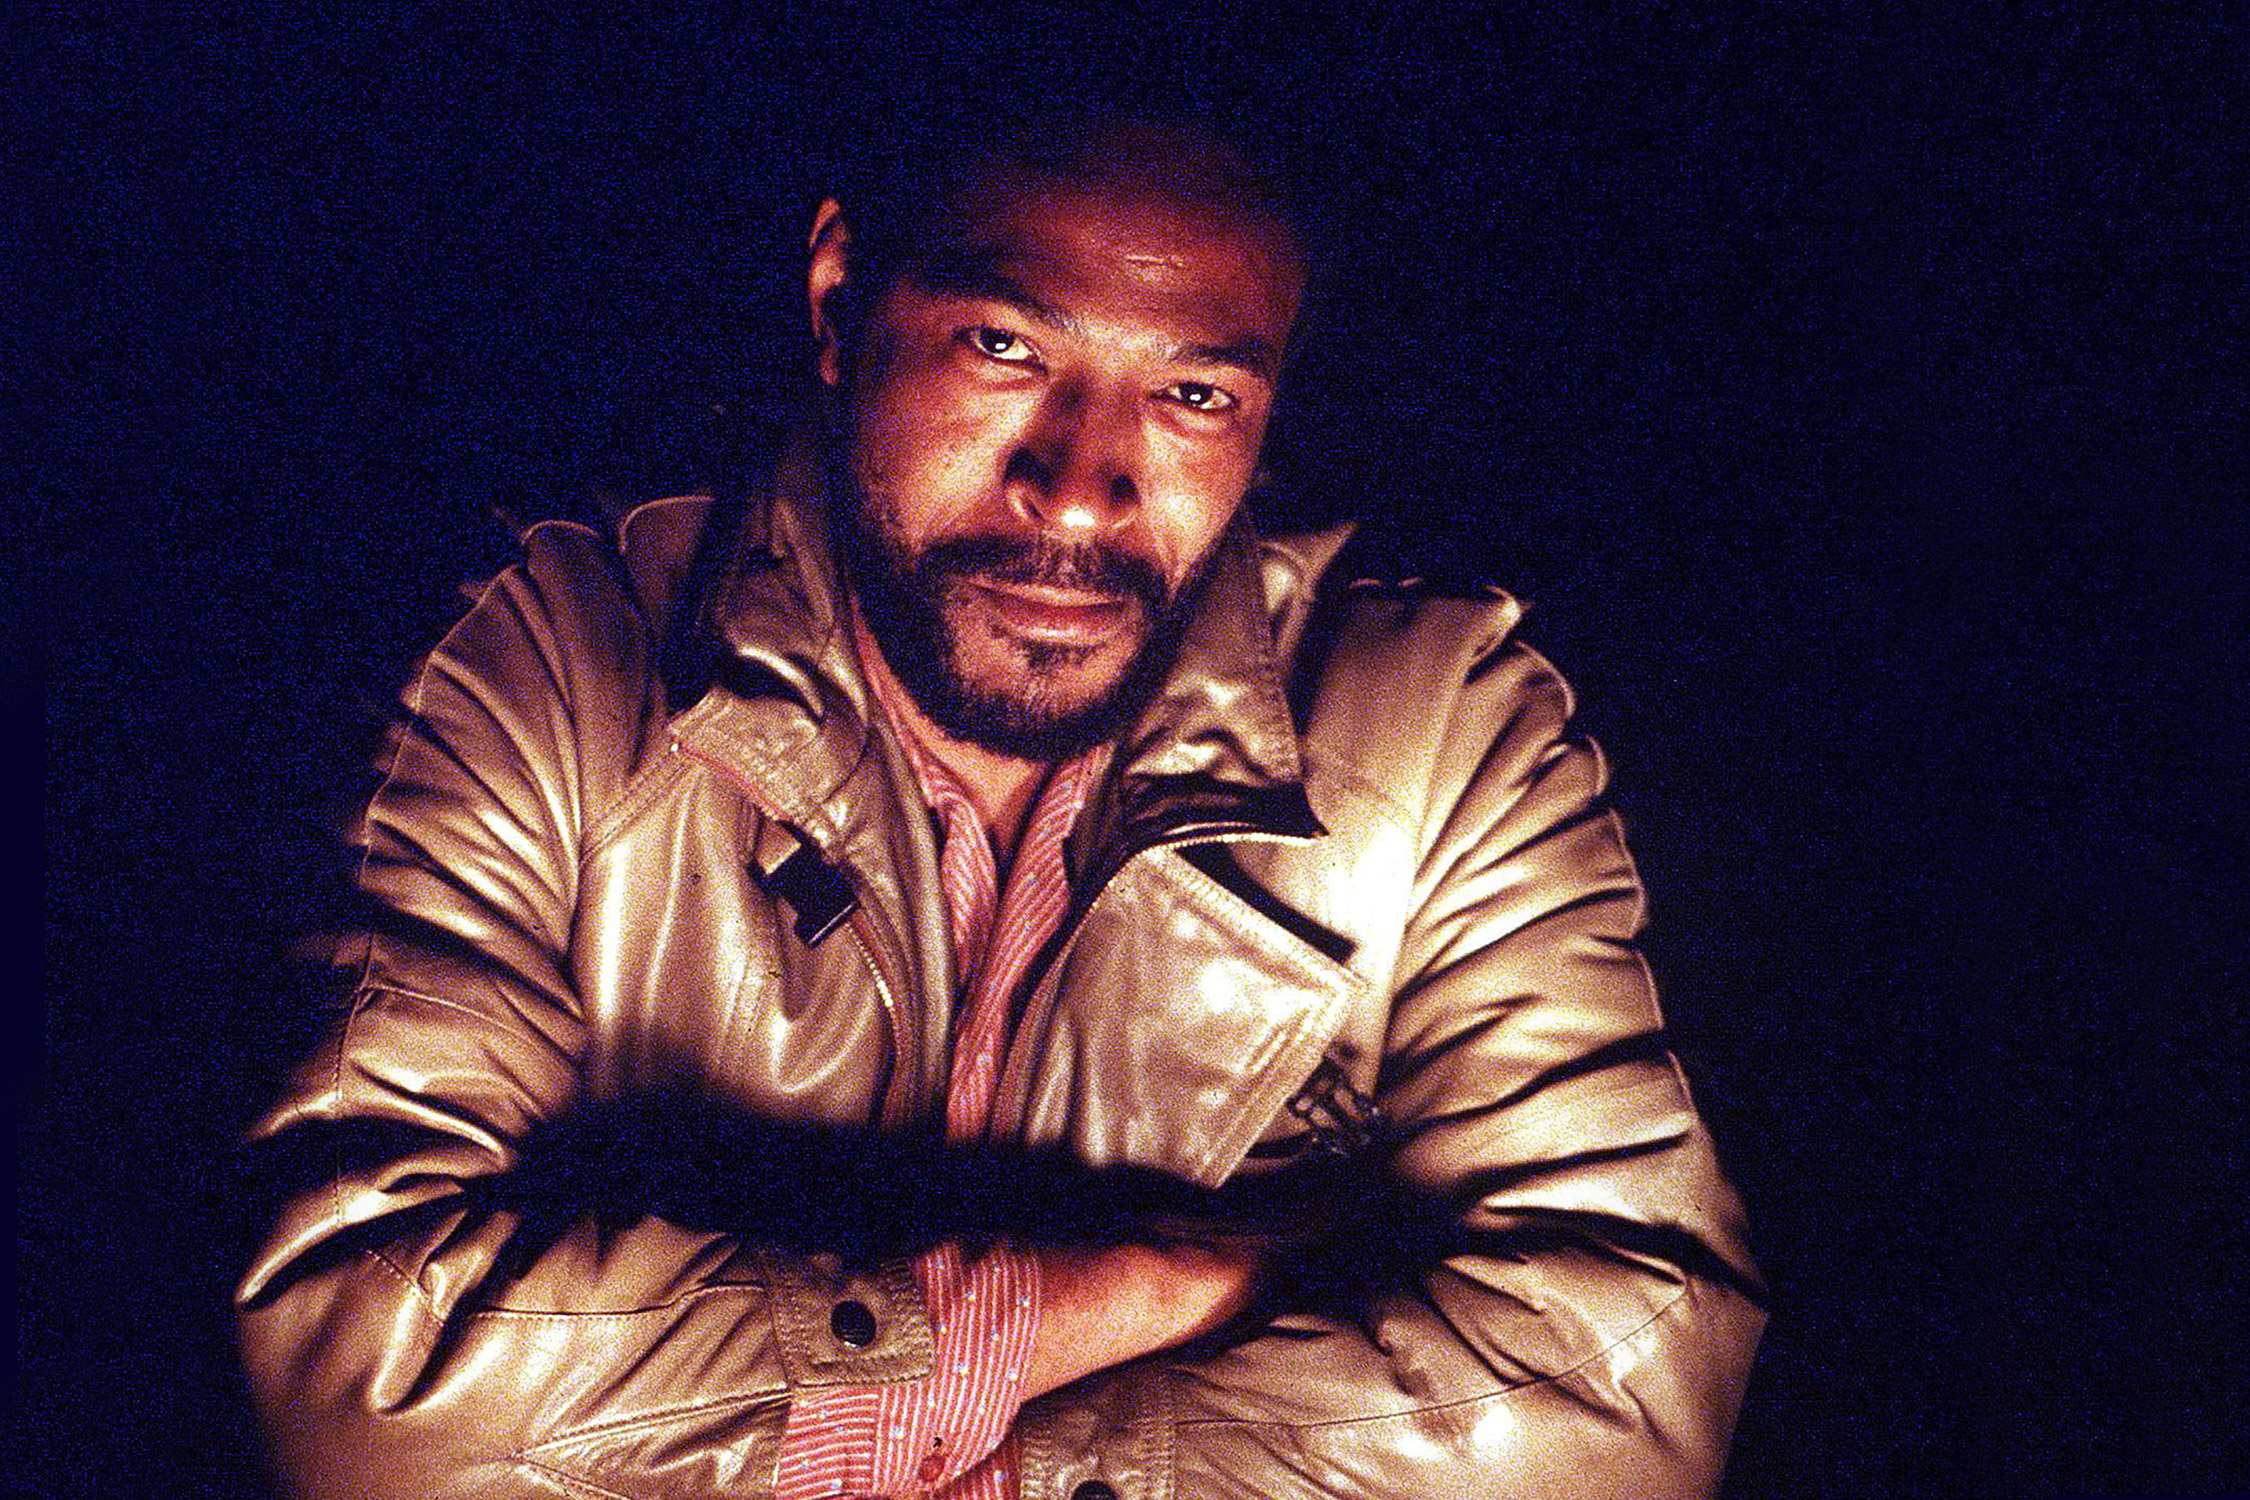 Marvin Gaye S Symphony Gets Remix For Lost Album You Re The Man Rolling Stone